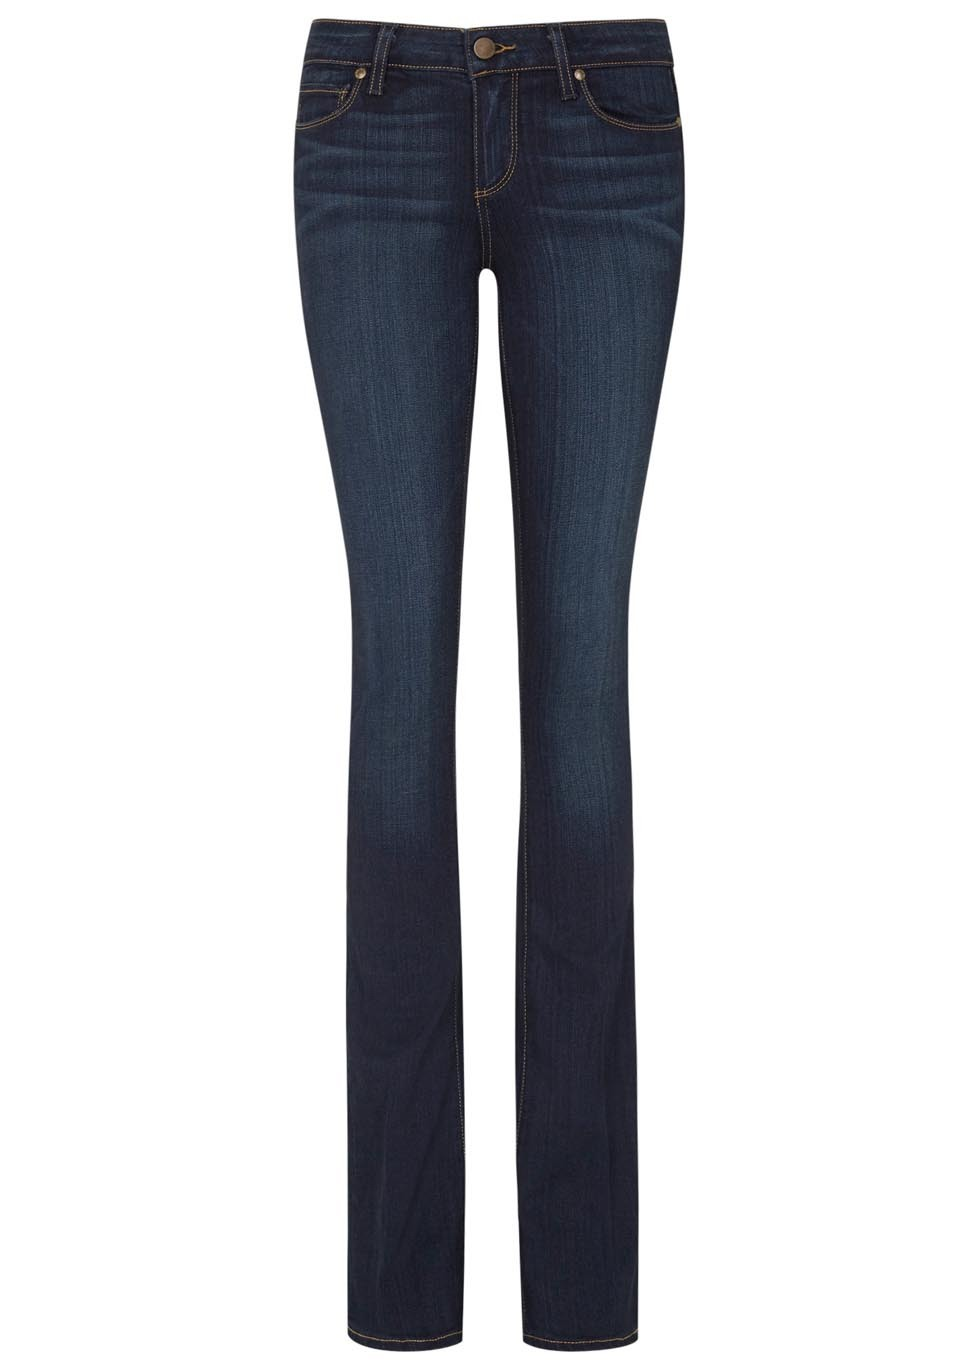 Manhattan Indigo Transcend Bootcut Jeans - style: bootcut; length: standard; pattern: plain; waist: low rise; pocket detail: traditional 5 pocket; predominant colour: navy; occasions: casual, evening, creative work; fibres: cotton - stretch; jeans detail: dark wash; texture group: denim; pattern type: fabric; season: a/w 2015